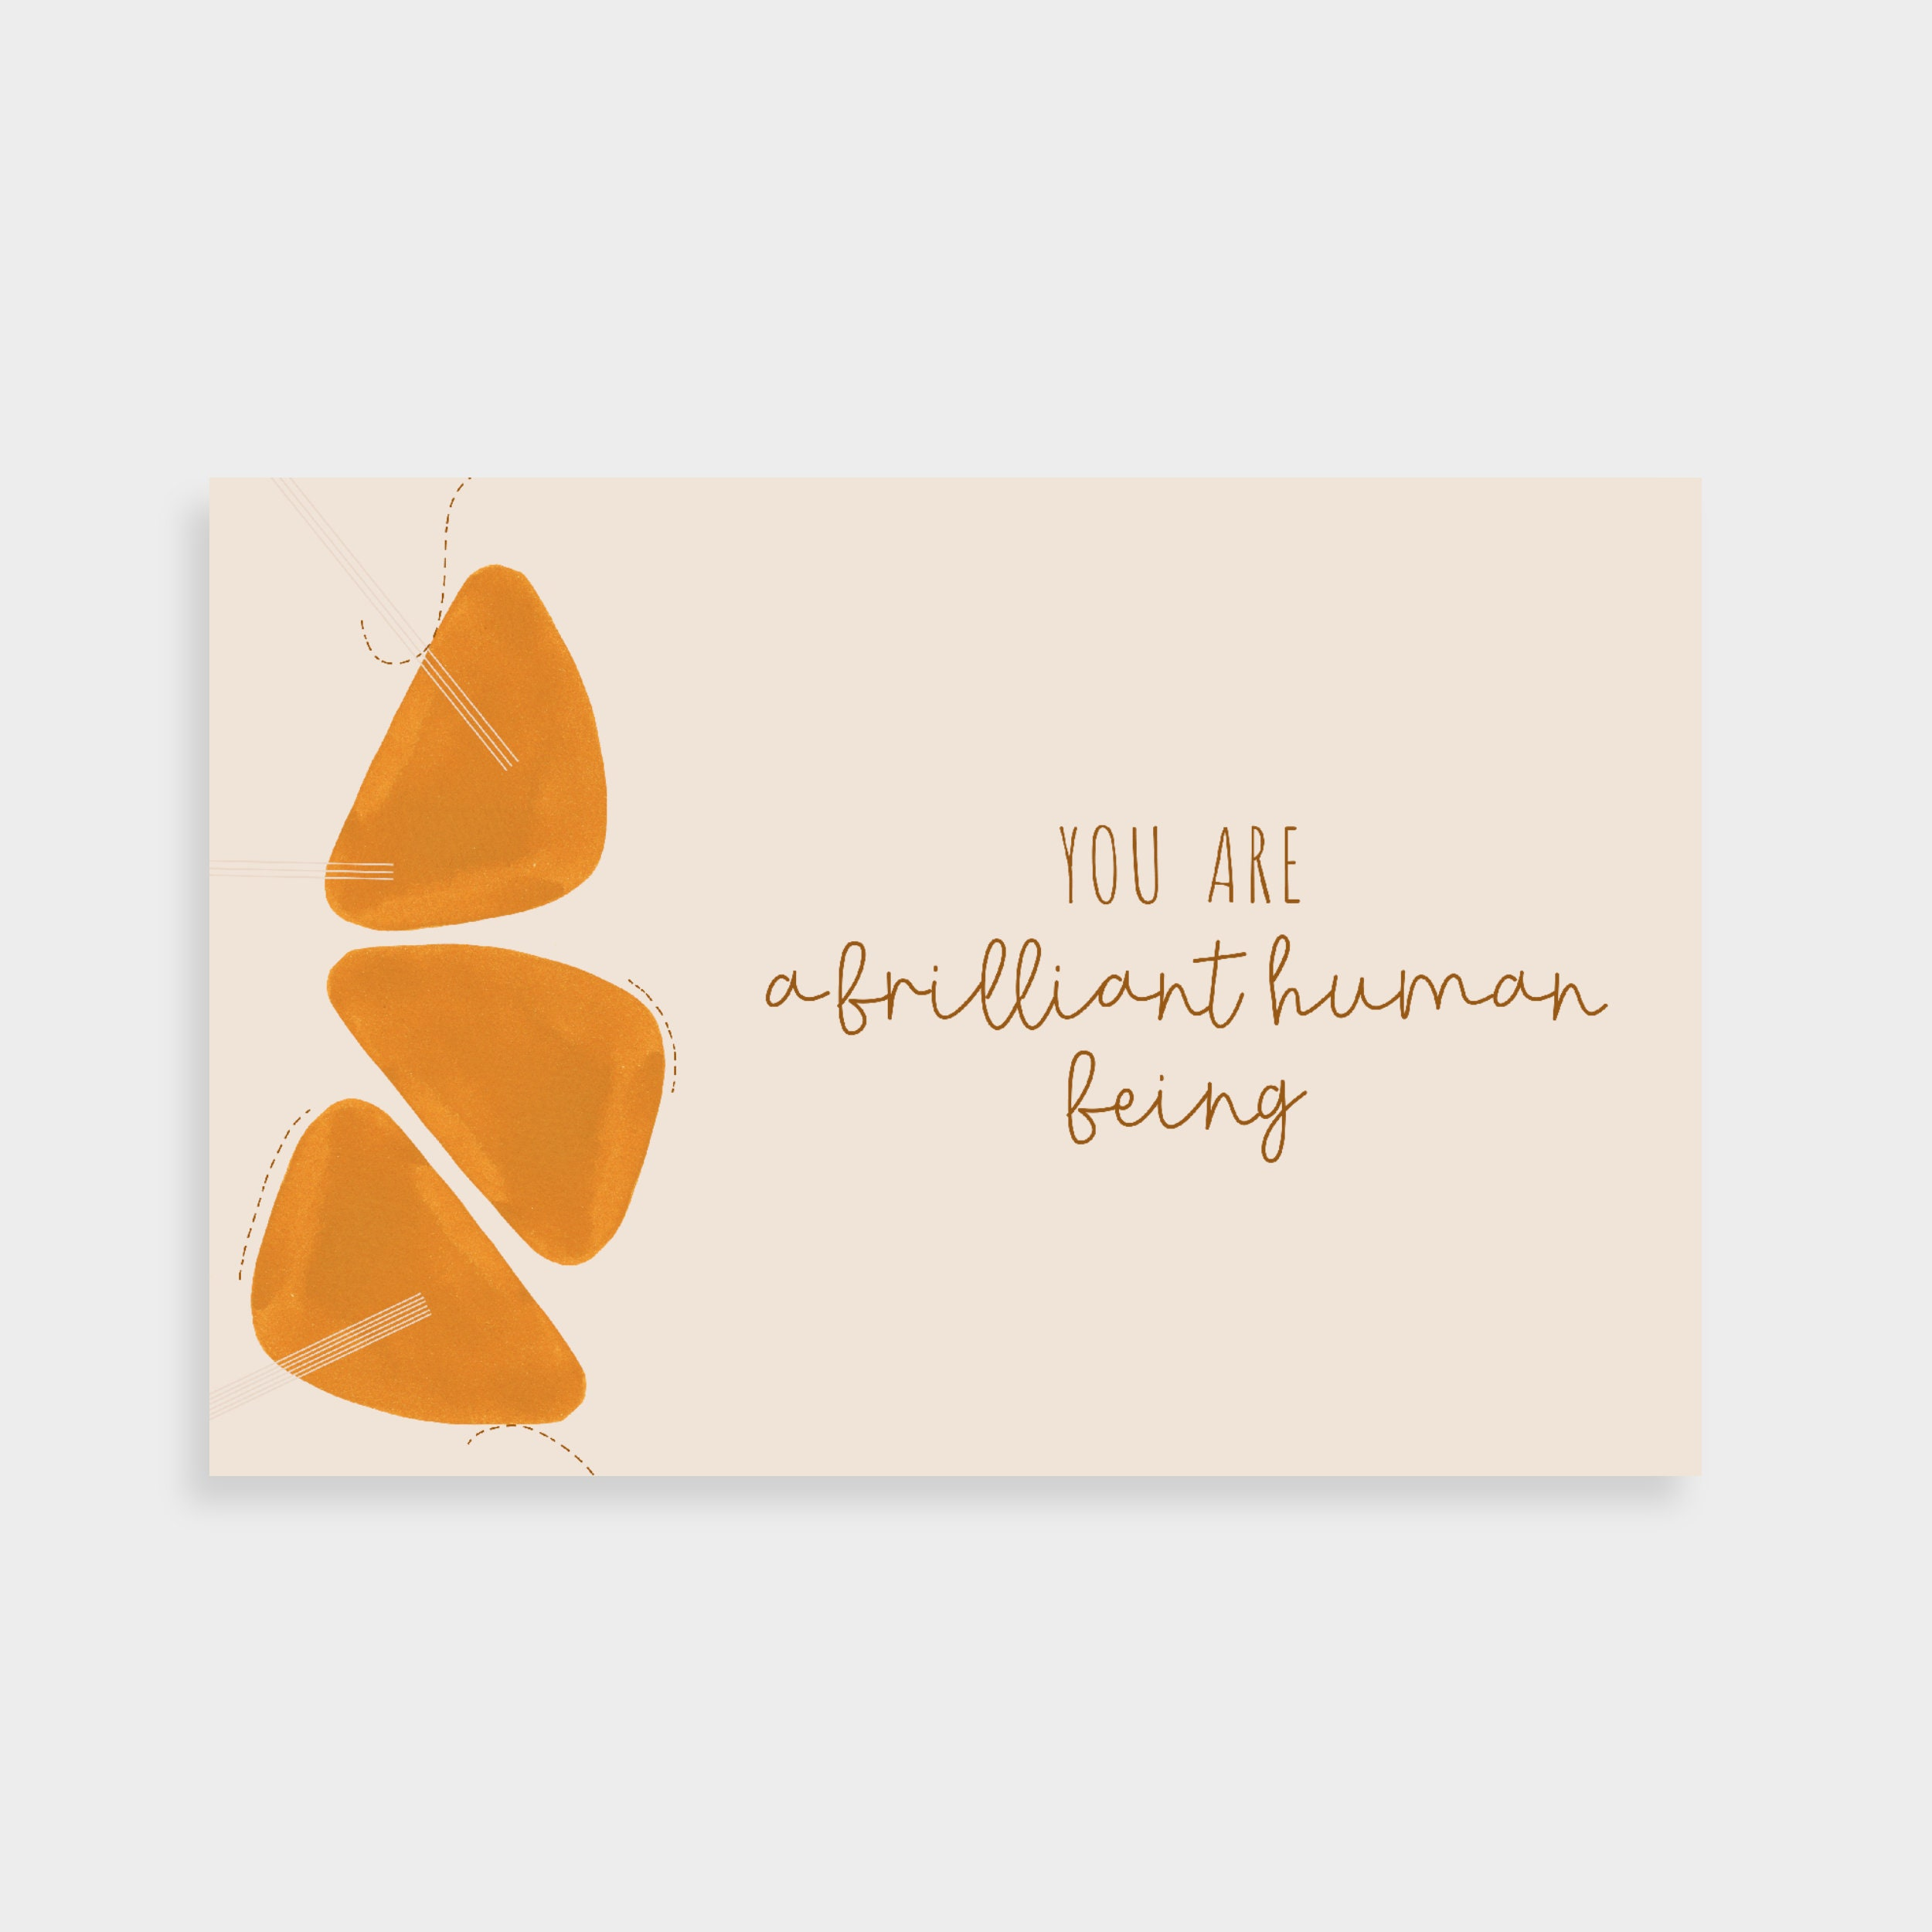 """Neutral cream postcard with abstract terracotta orange shapes and dotted line drawings on the left. Postcard text says """"You are a brilliant human being"""" on the right"""